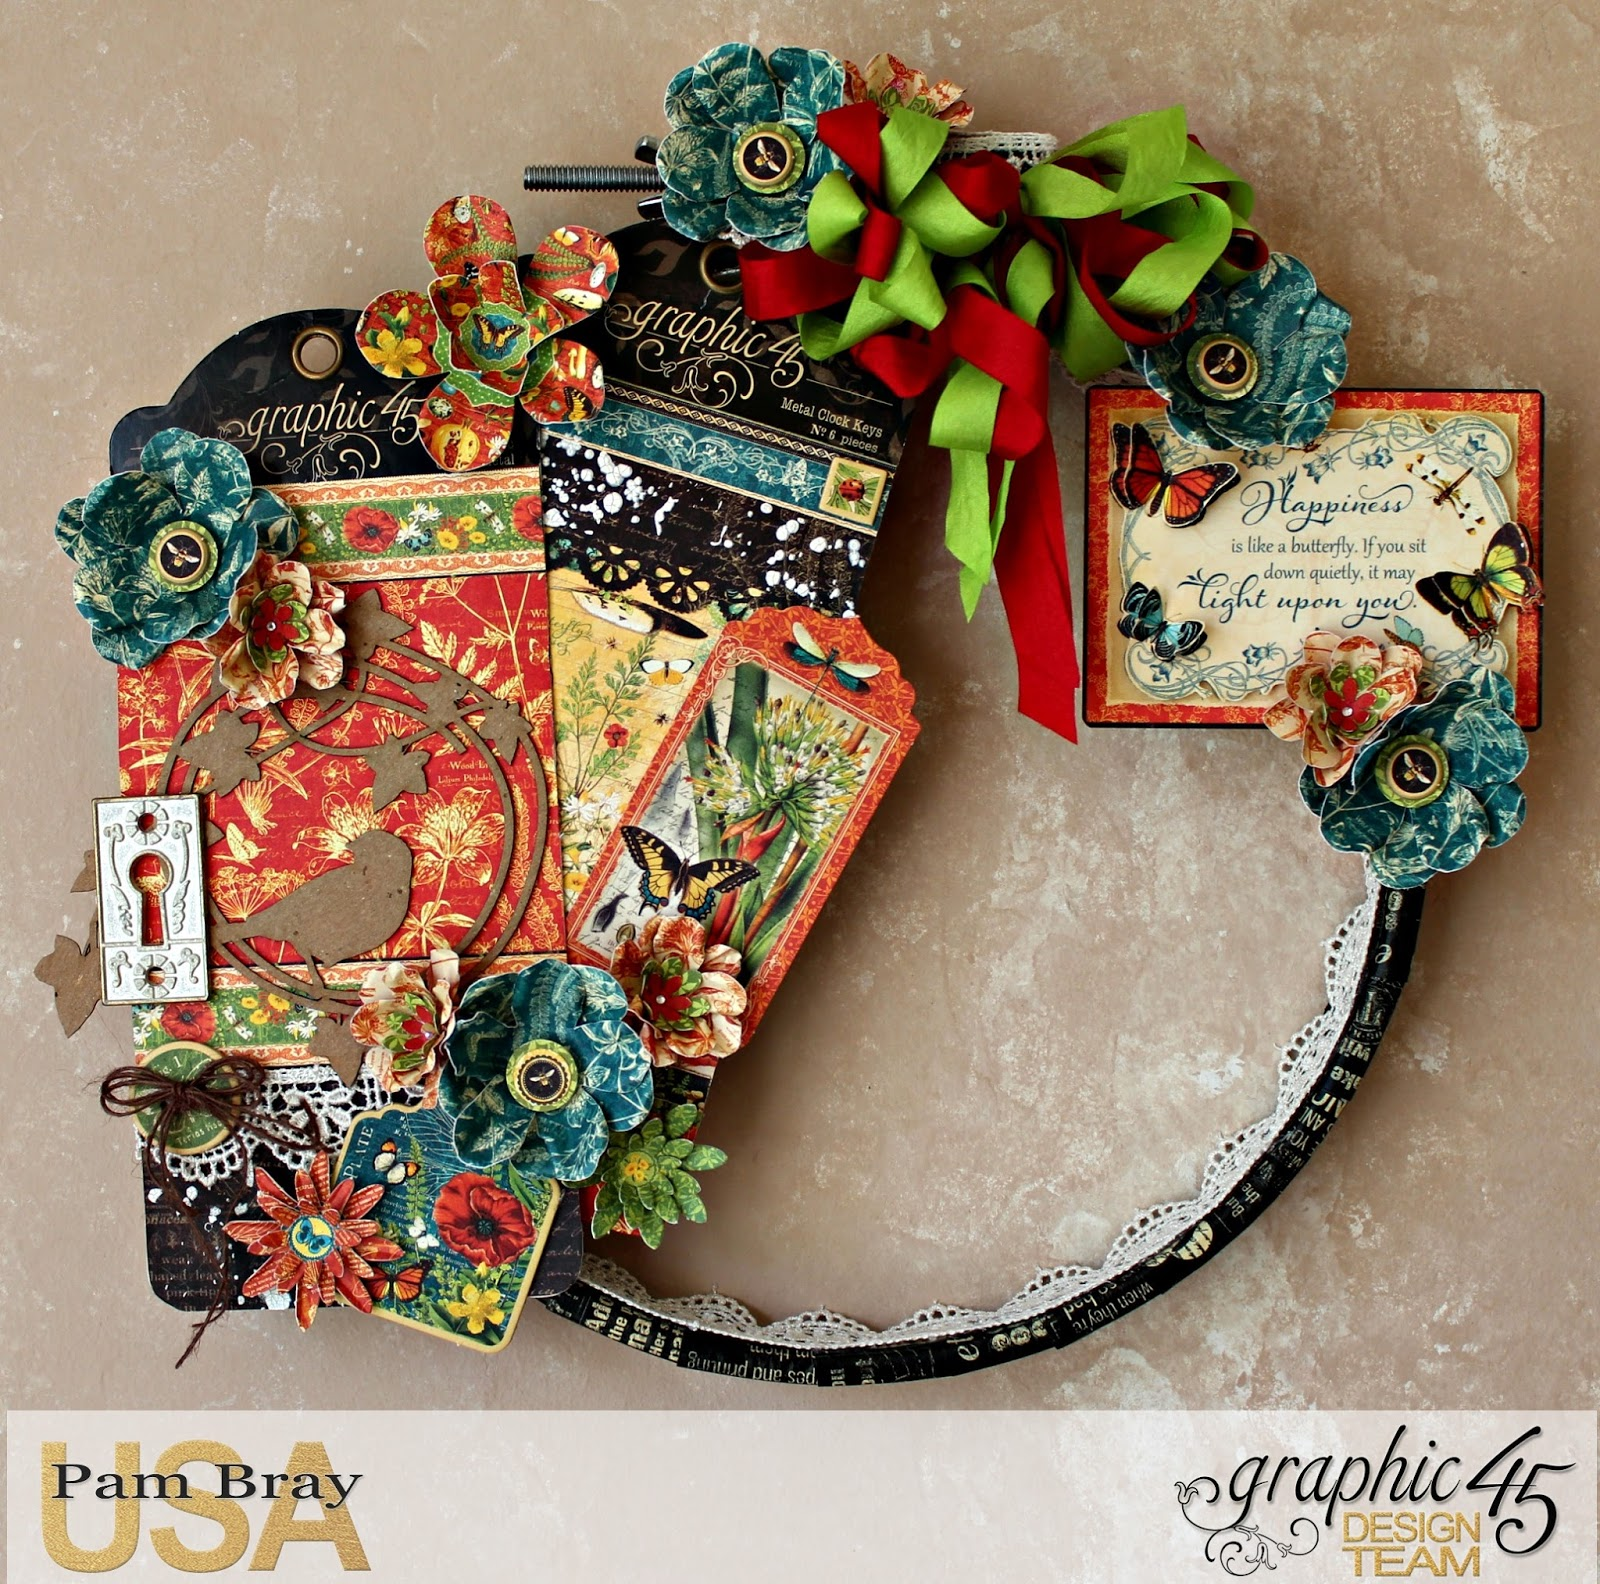 Scrapbook flair pam bray designs upcycled nature